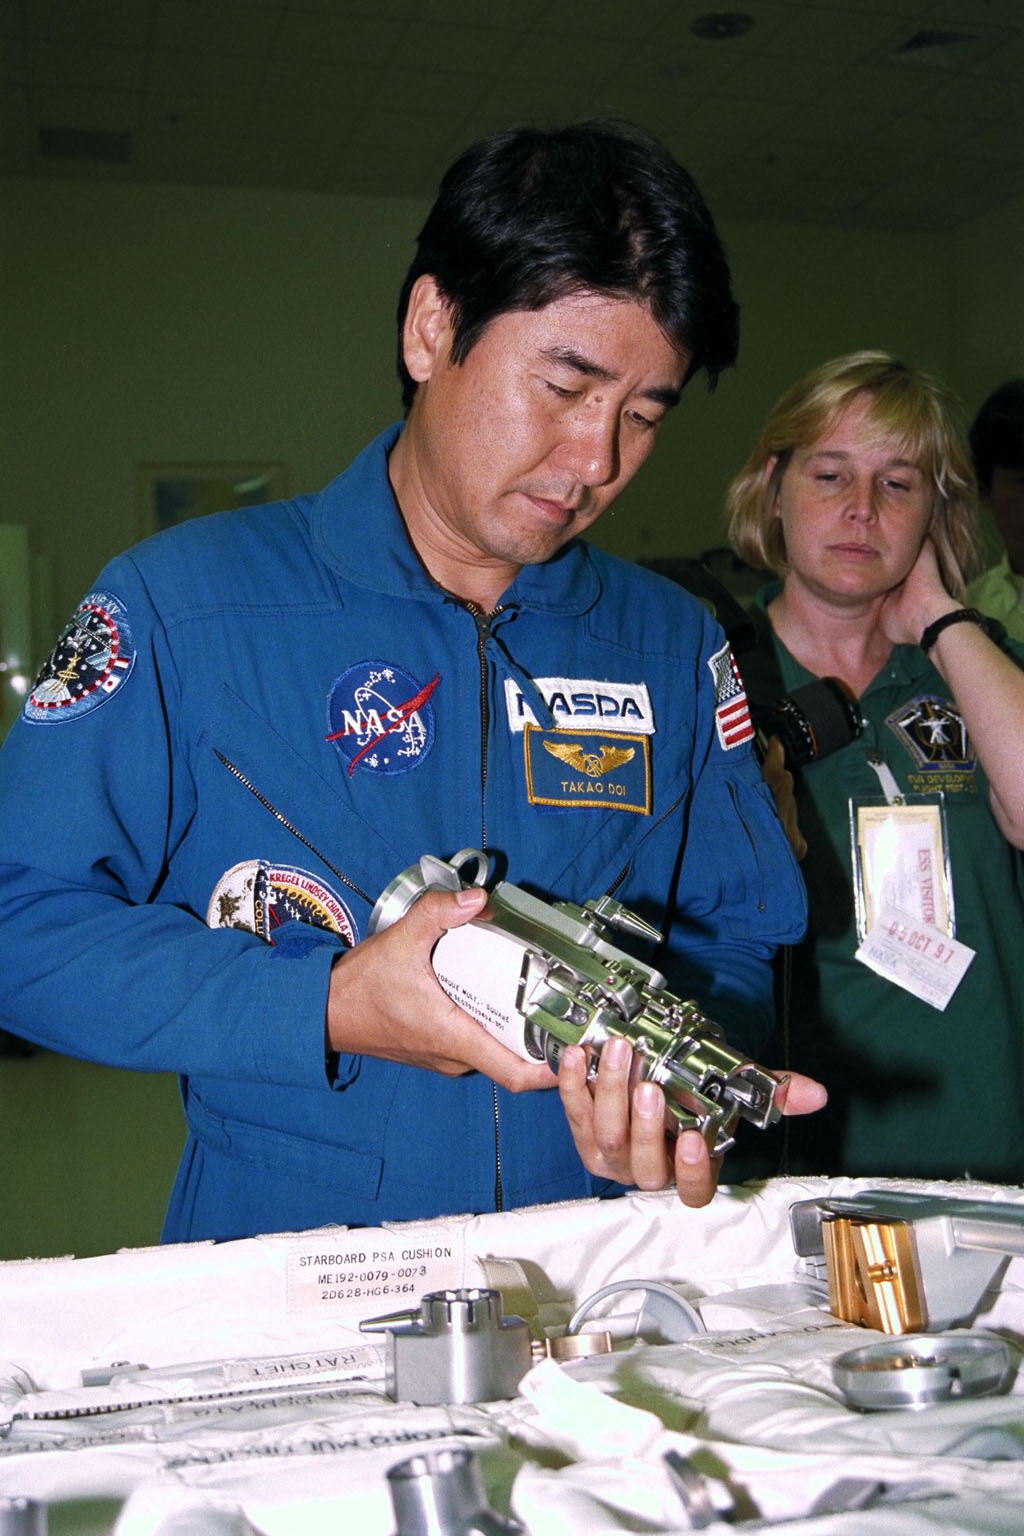 STS-87 Mission Specialist Takao Doi , Ph.D., of the National Space Development Agency of Japan, participates in the Crew Equipment Integration Test (CEIT) in Kennedy Space Center?s (KSC's) Vertical Processing Facility. Glenda Laws, the extravehicular activity (EVA) coordinator, Johnson Space Center, stands behind Dr. Doi. The CEIT gives astronauts an opportunity to get a hands-on look at the payloads with which they will be working on-orbit. STS-87 will be the fourth United States Microgravity Payload and flight of the Spartan-201 deployable satellite. During the mission, Dr. Doi will be the first Japanese astronaut to perform a spacewalk. STS-87 is scheduled for a Nov. 19 liftoff from KSC